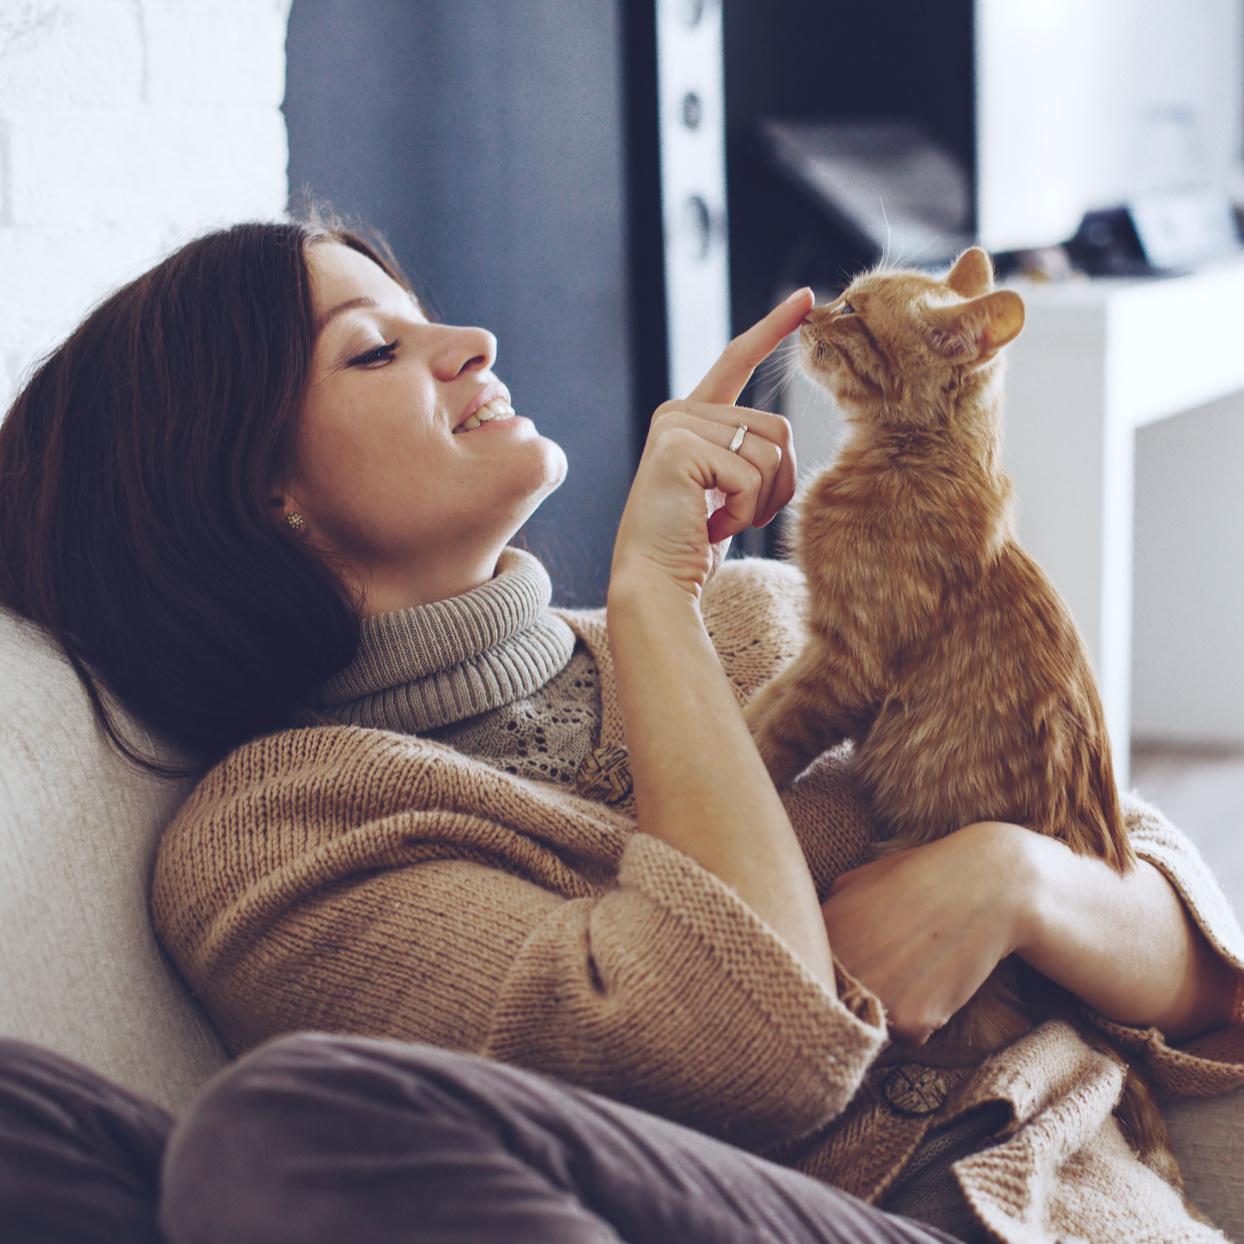 A New Allergy Vaccine Could Finally Let Anyone Become a Cat Person